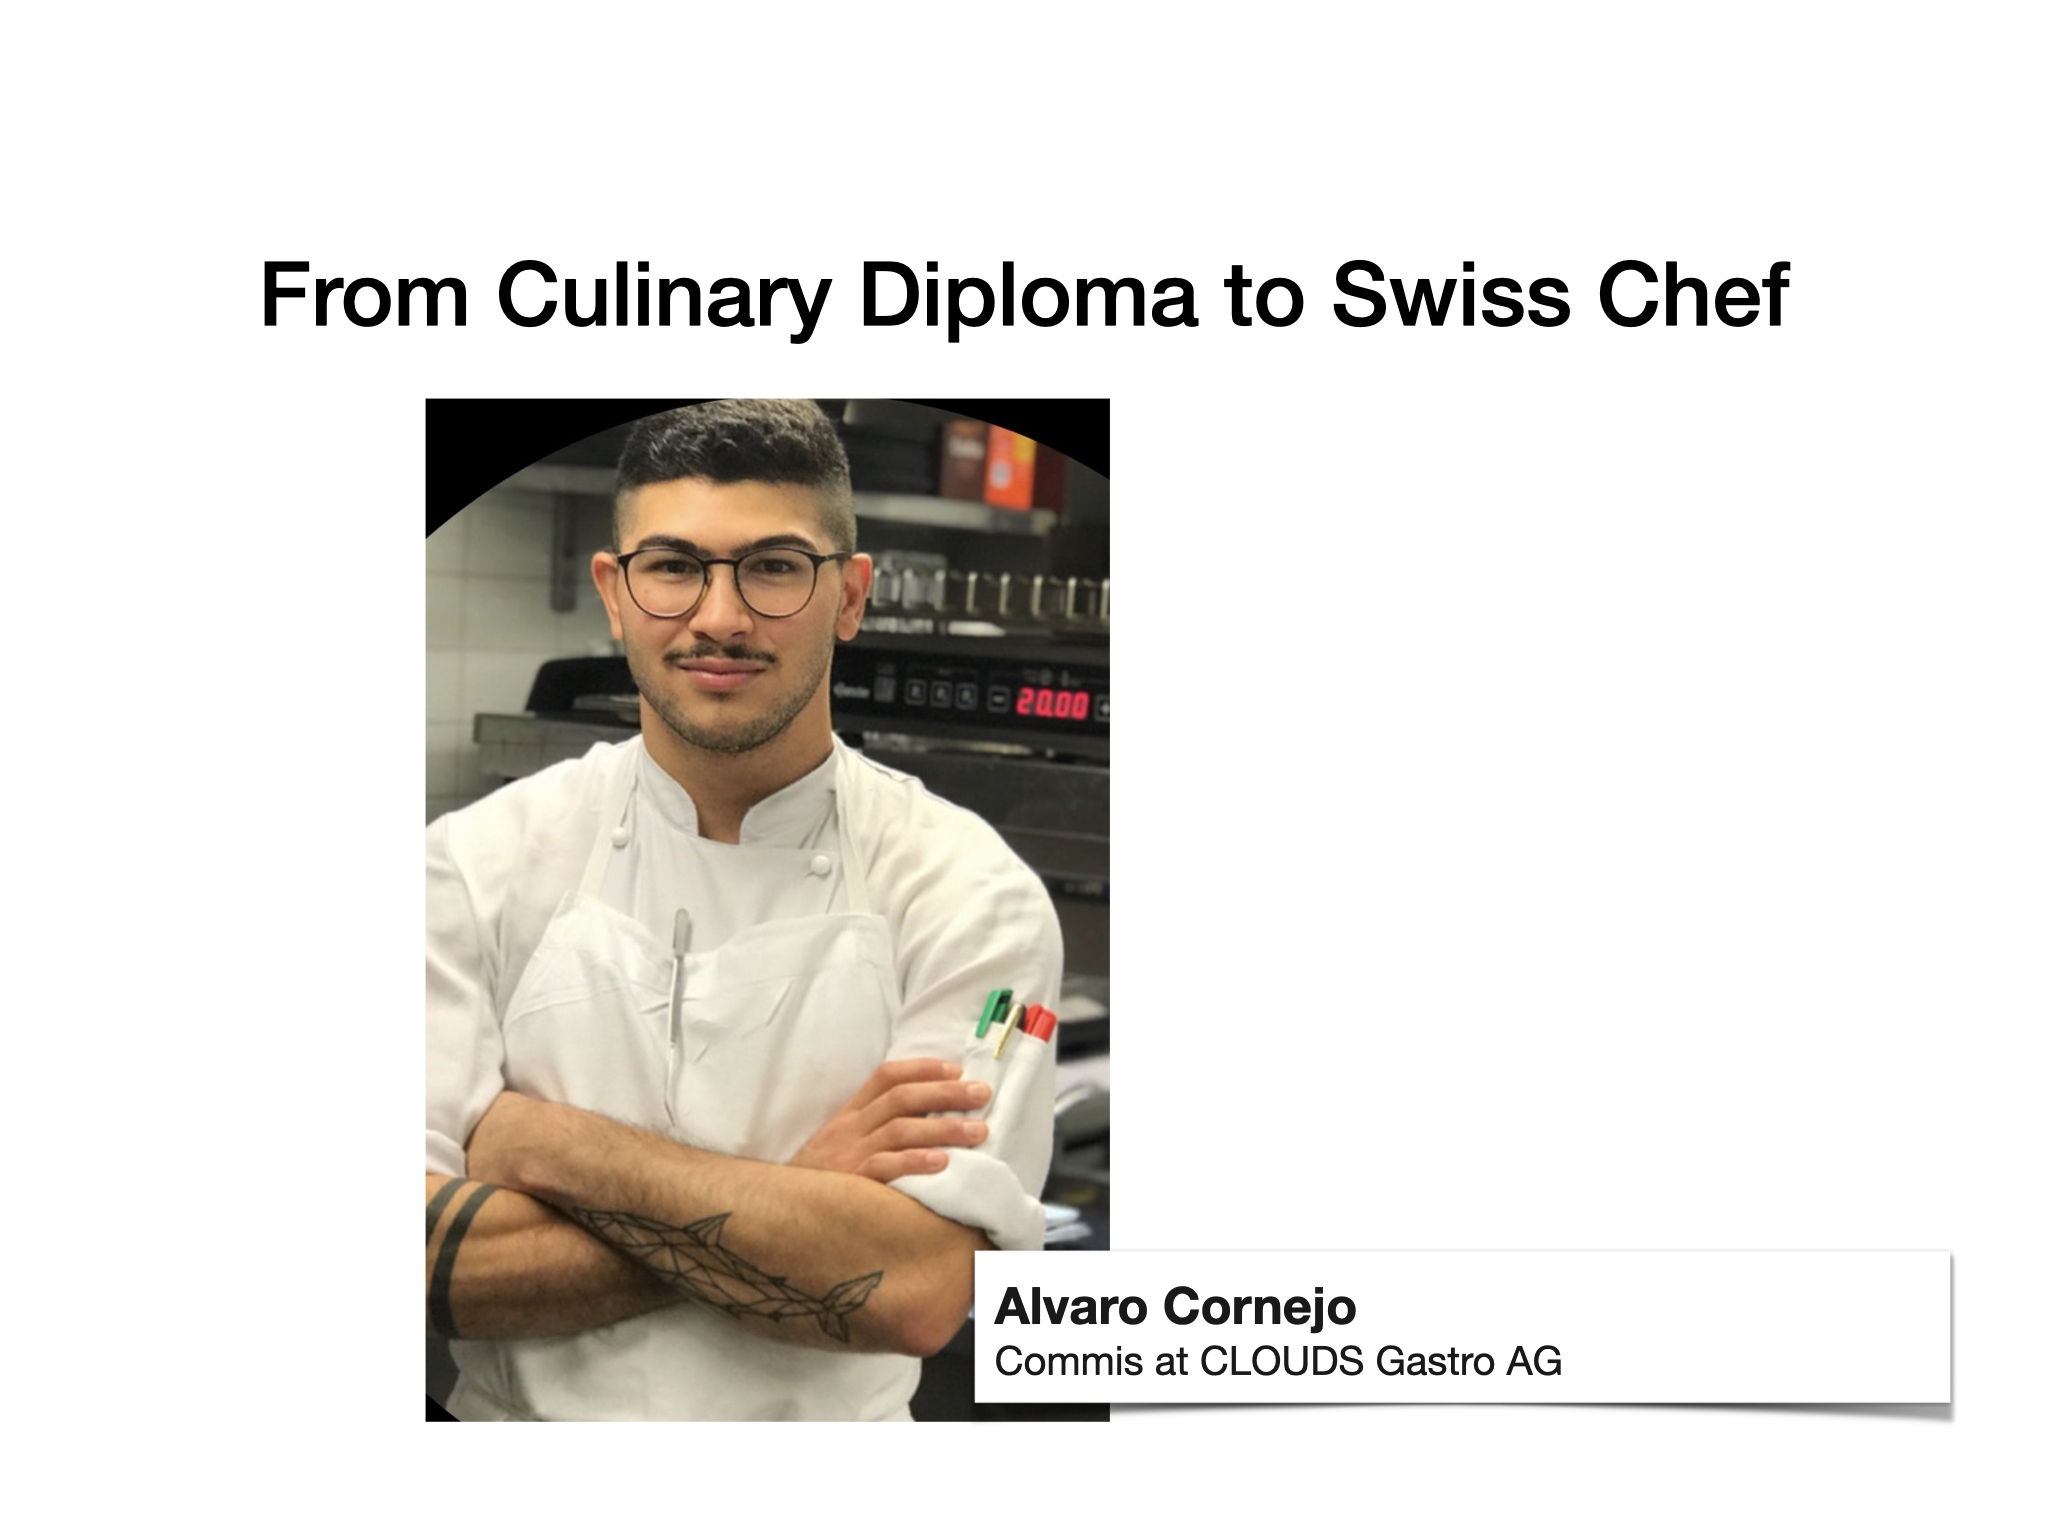 Alvaro Cornejo – From Culinary Diploma to Swiss Chef